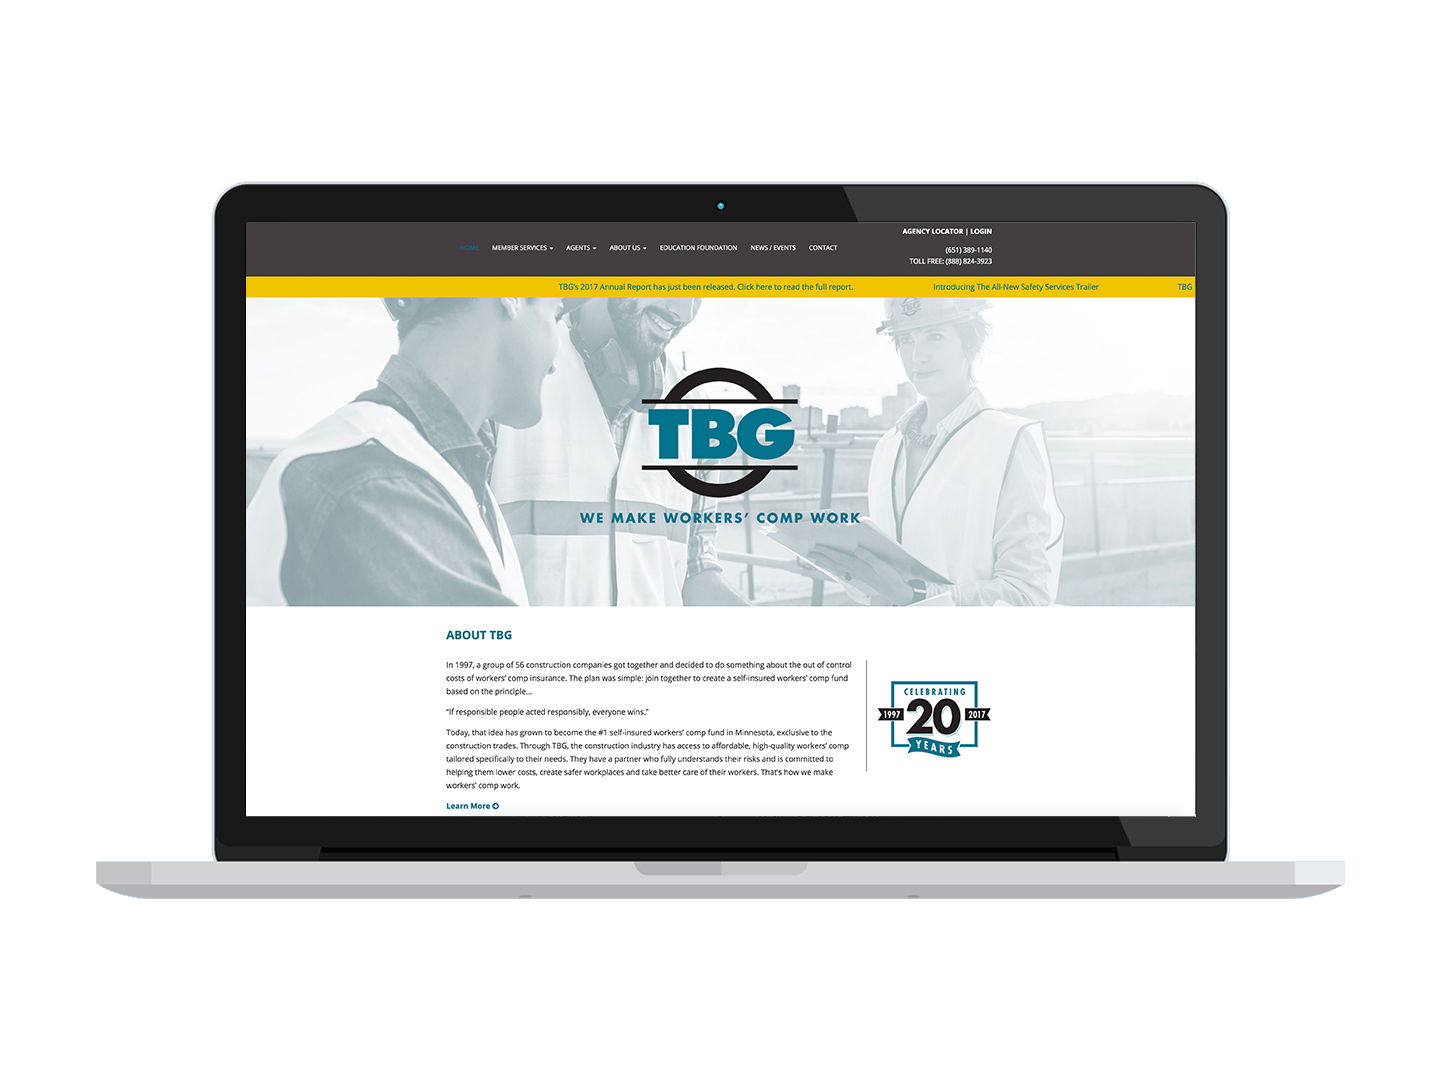 TBG brand identity